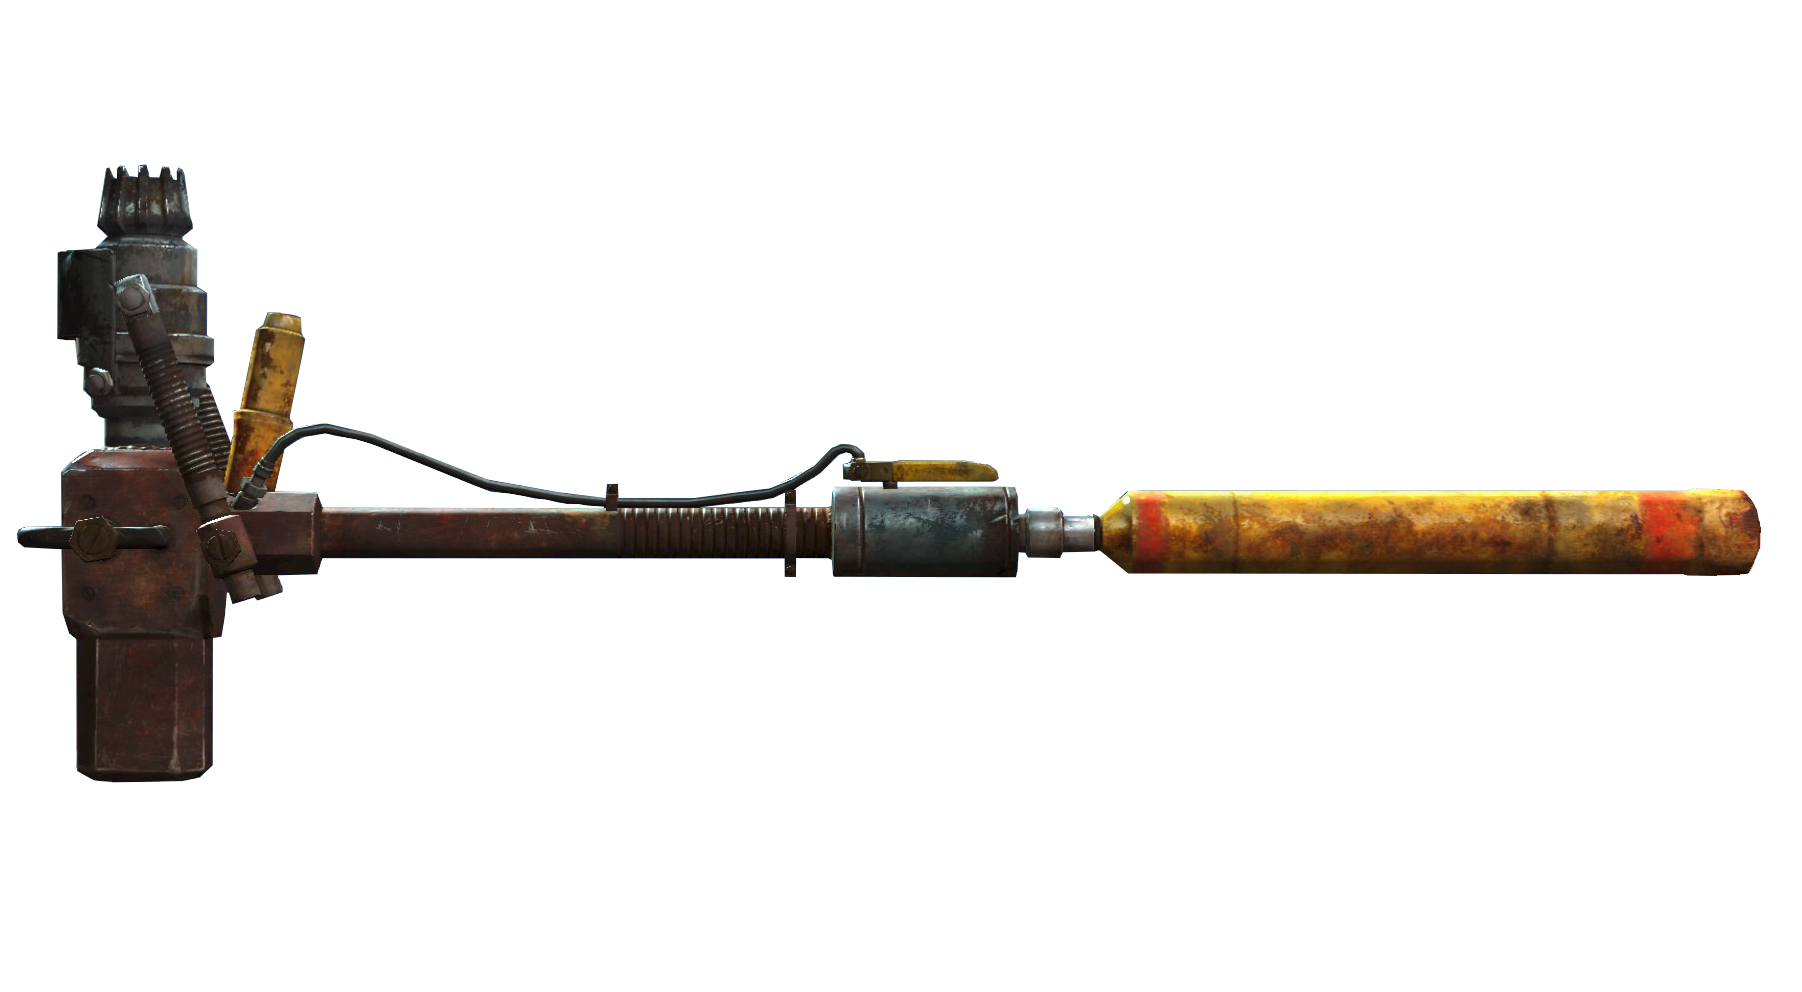 Sledgehammer drawing shotgun. Super sledge fallout wiki